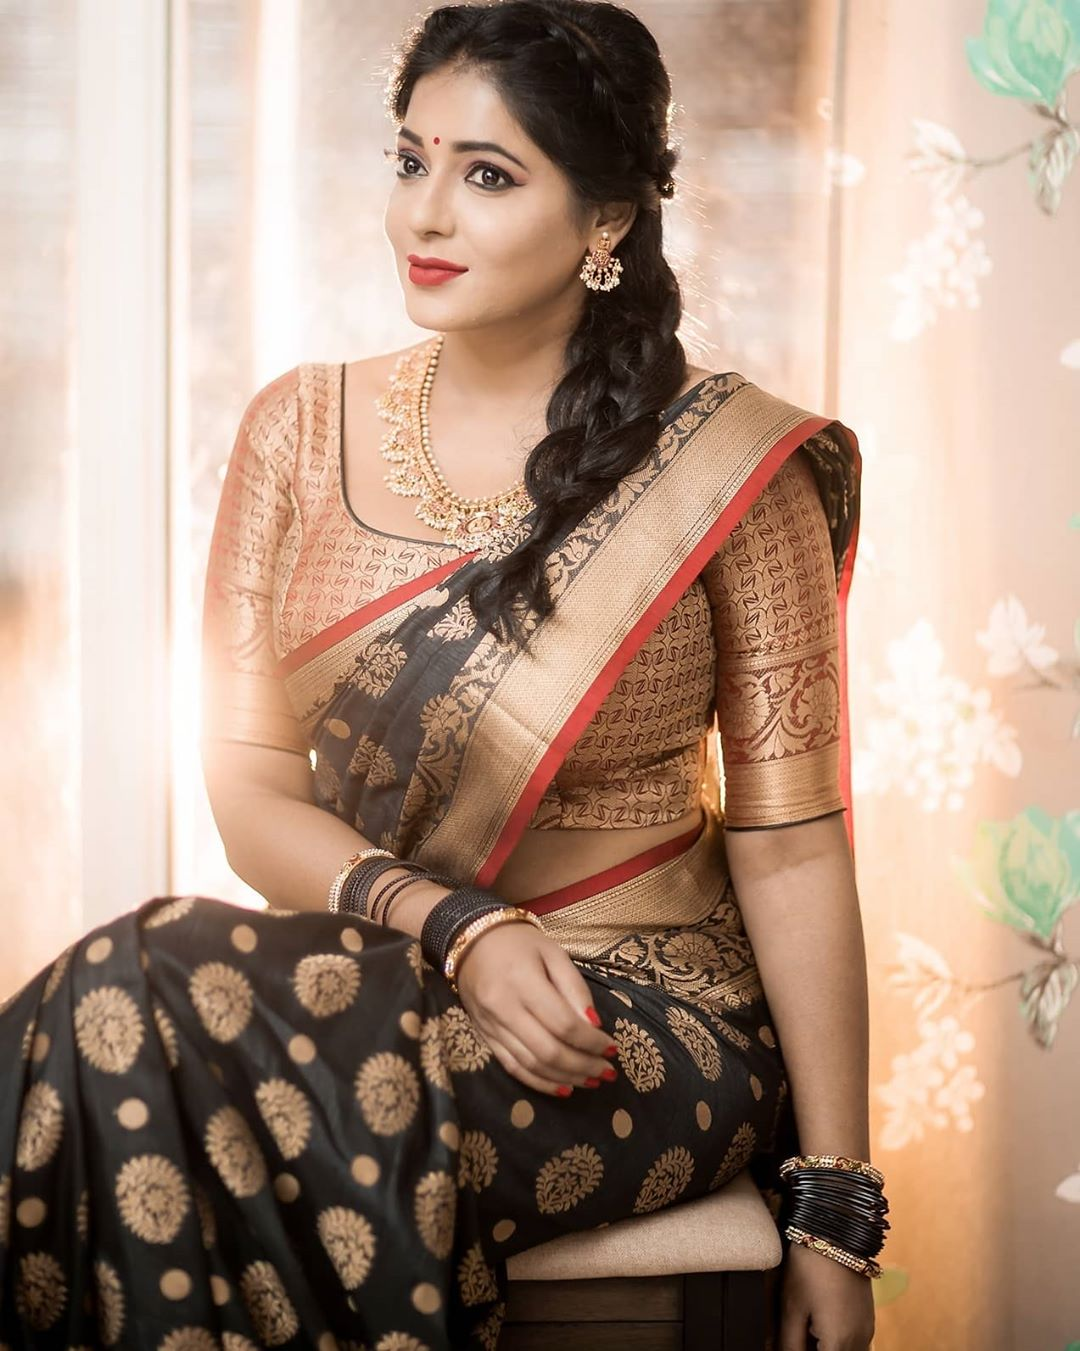 Reshma-Pasupuleti-latest-saree-photo-30